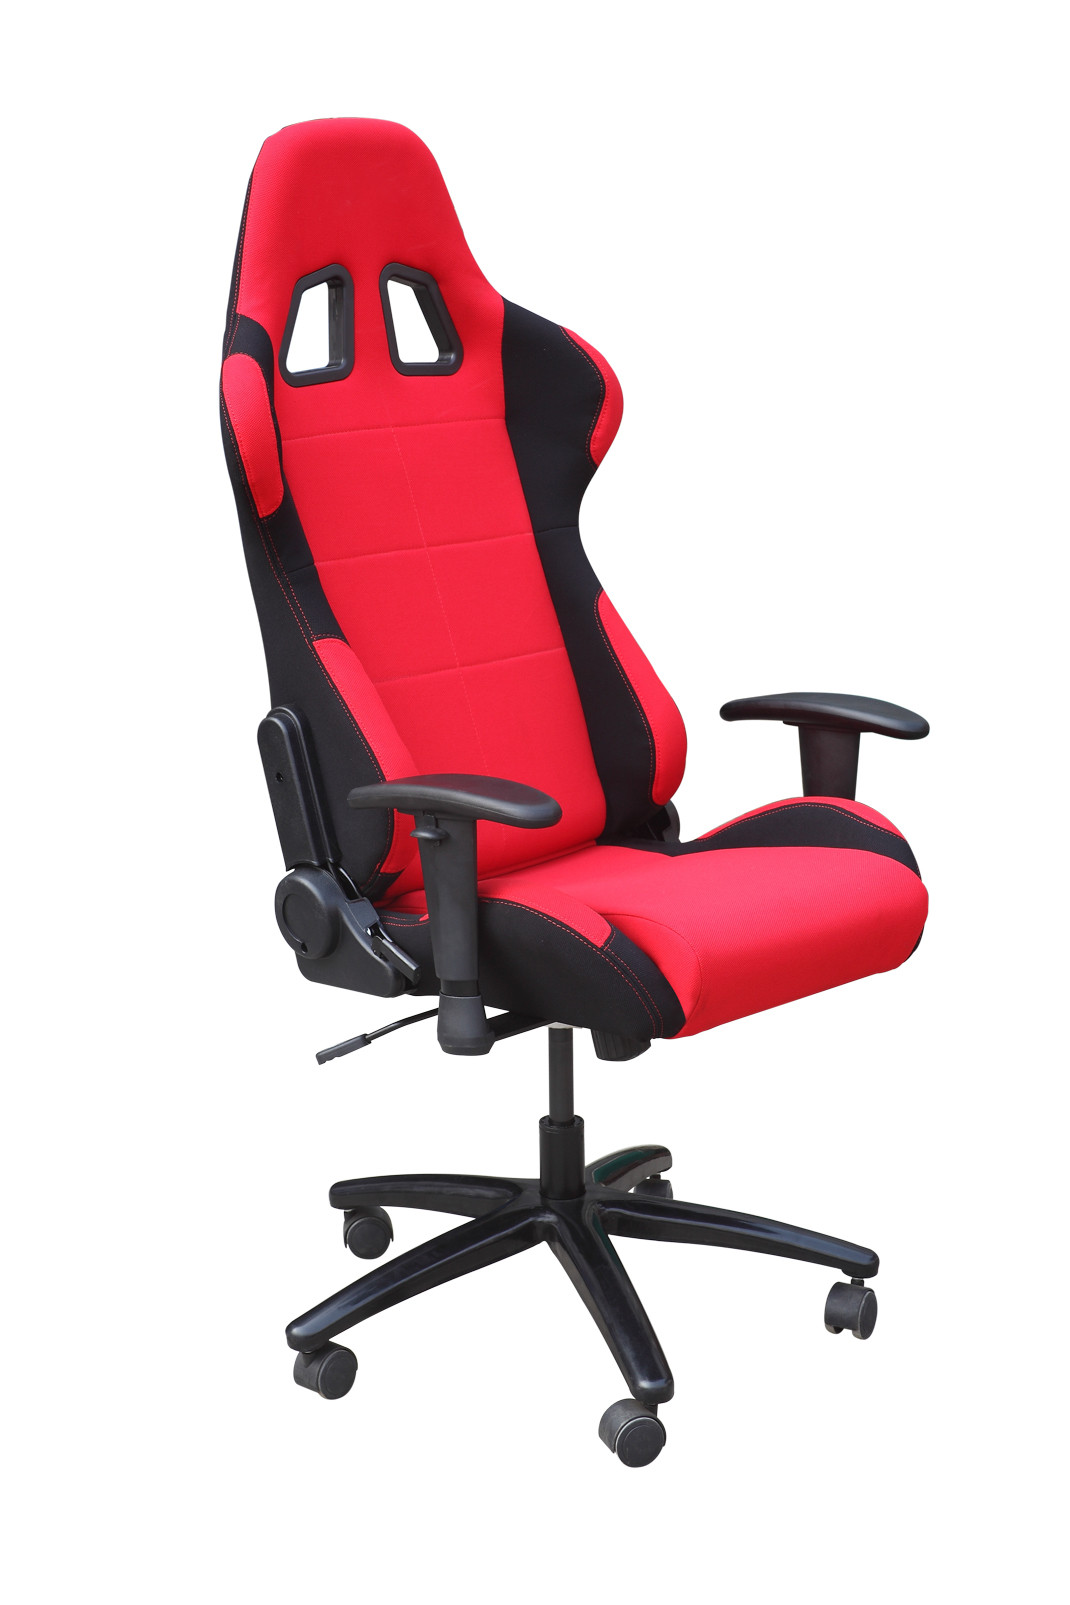 Comfy Colorful Leather Adjustable Office Chair With Spray Painting Feet SGS